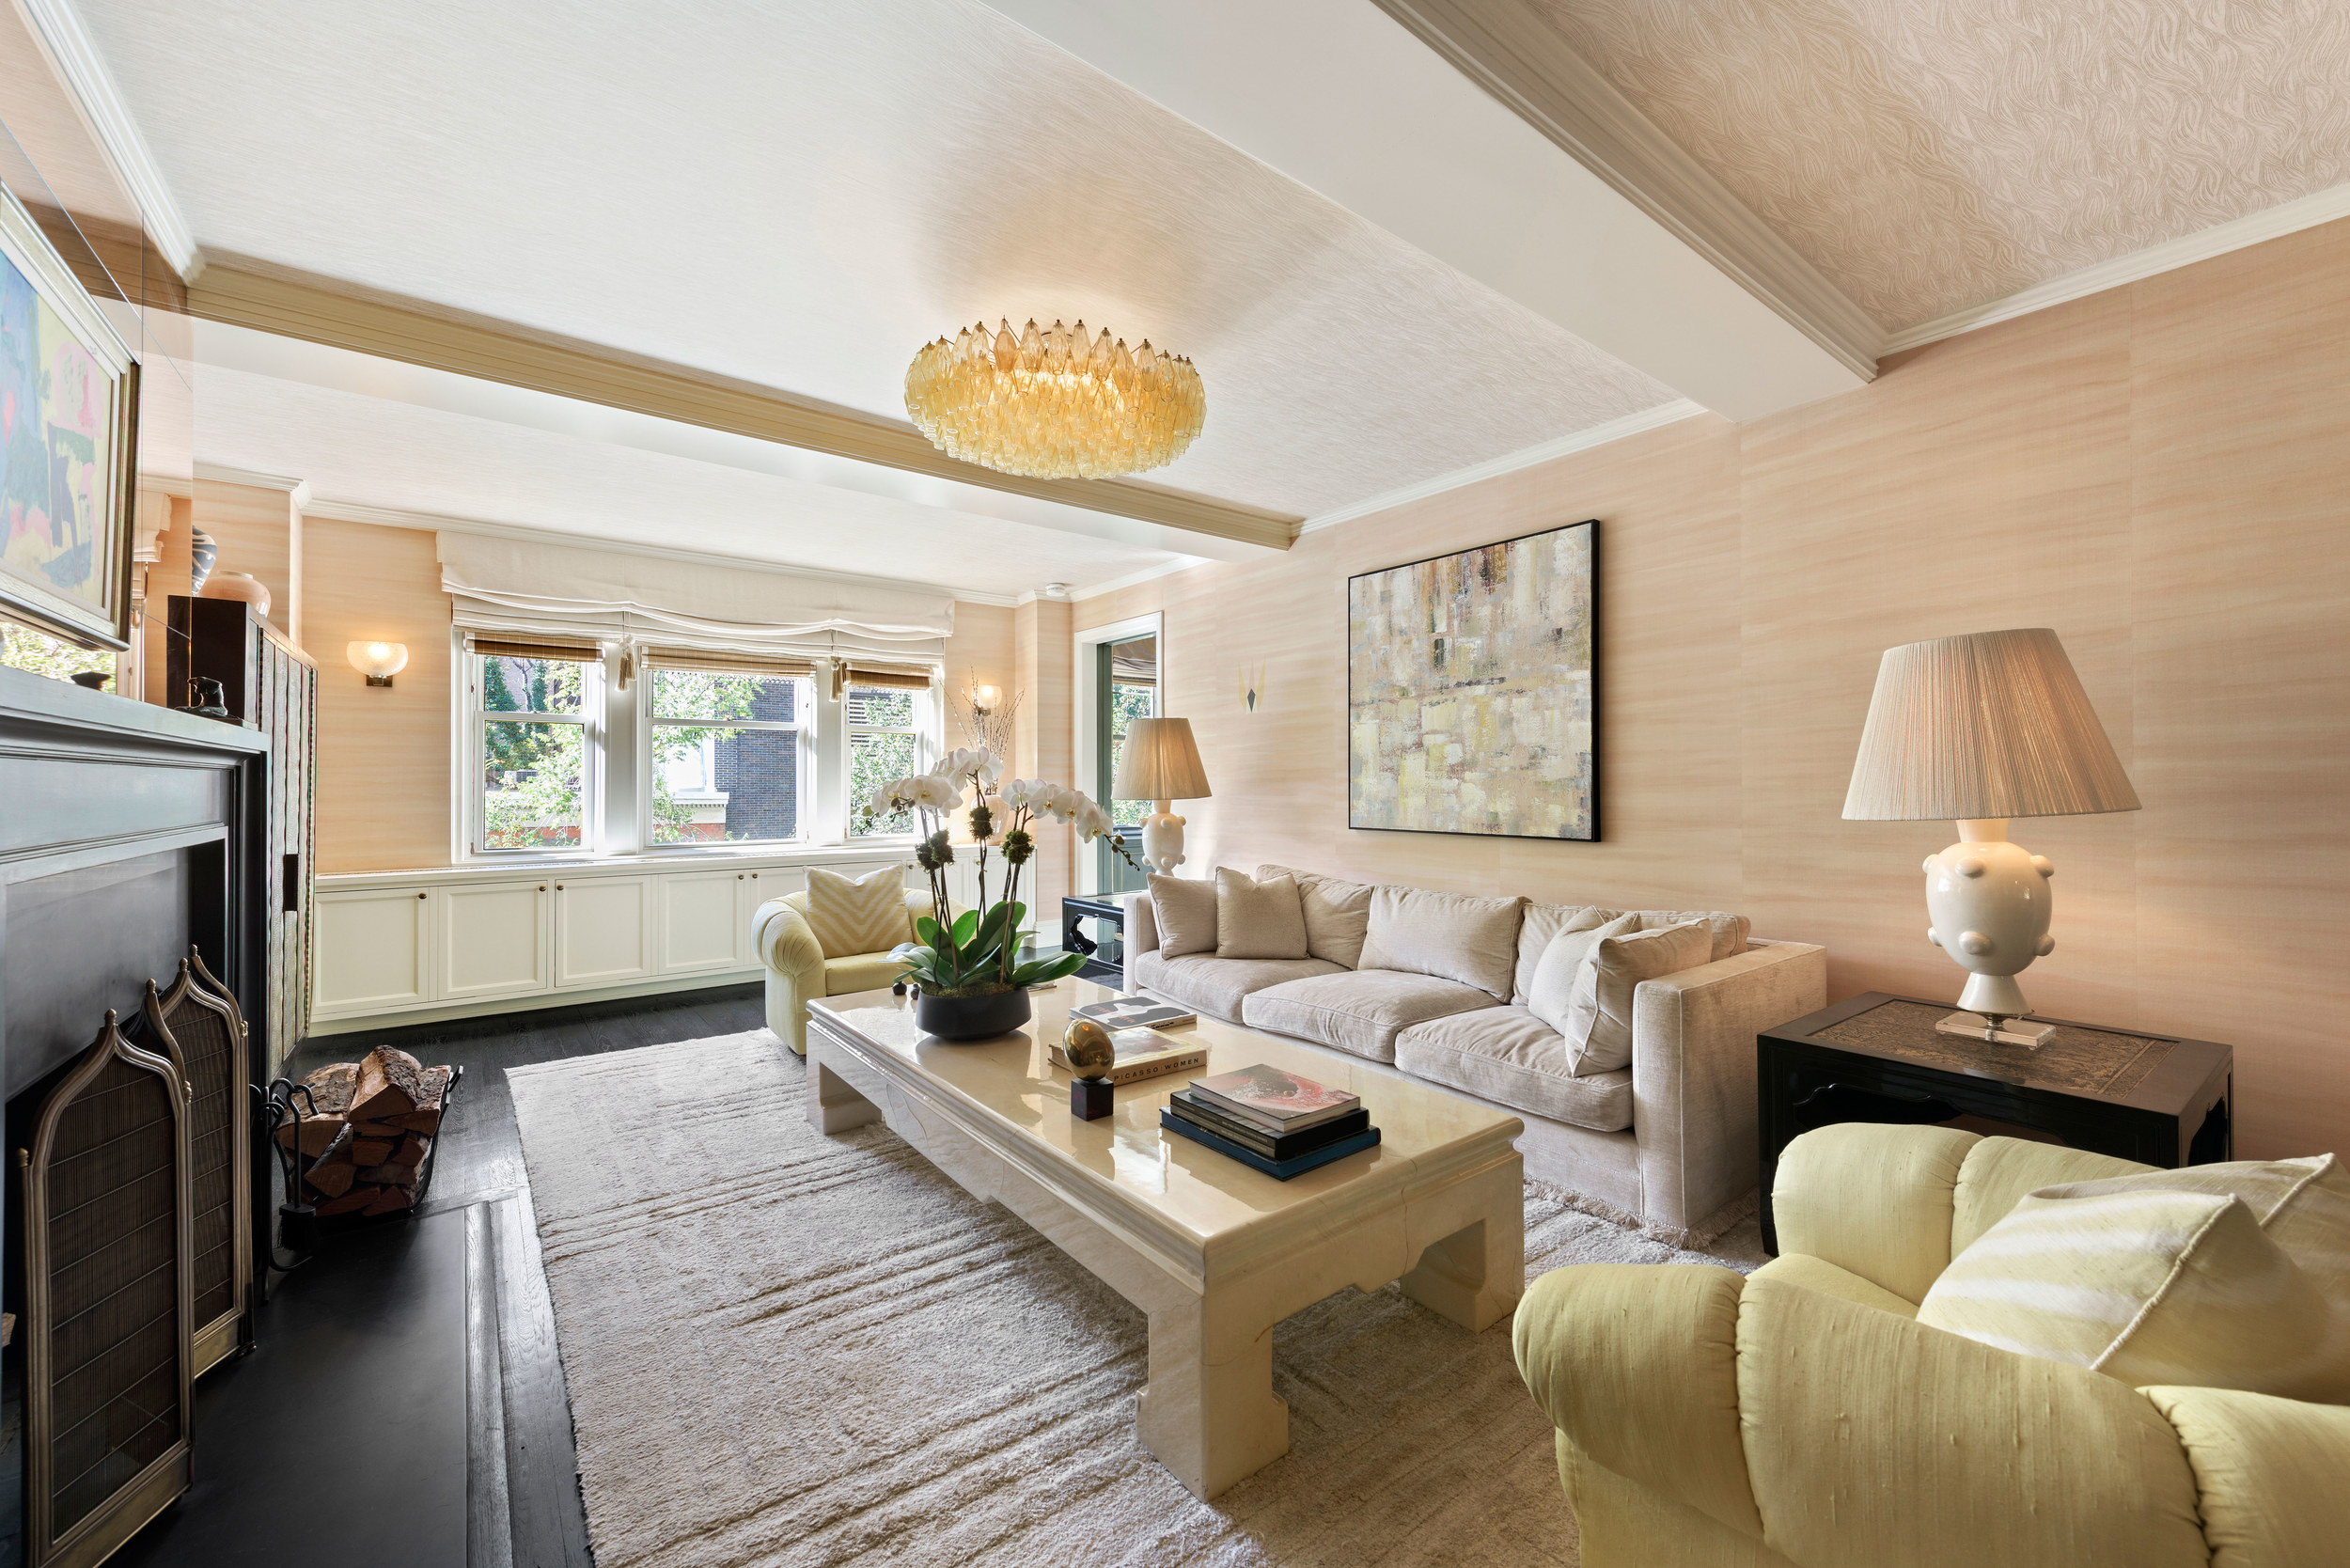 cameron-diaz-greenwich-village-apartment-on-sale-warburg-realty-02.jpg